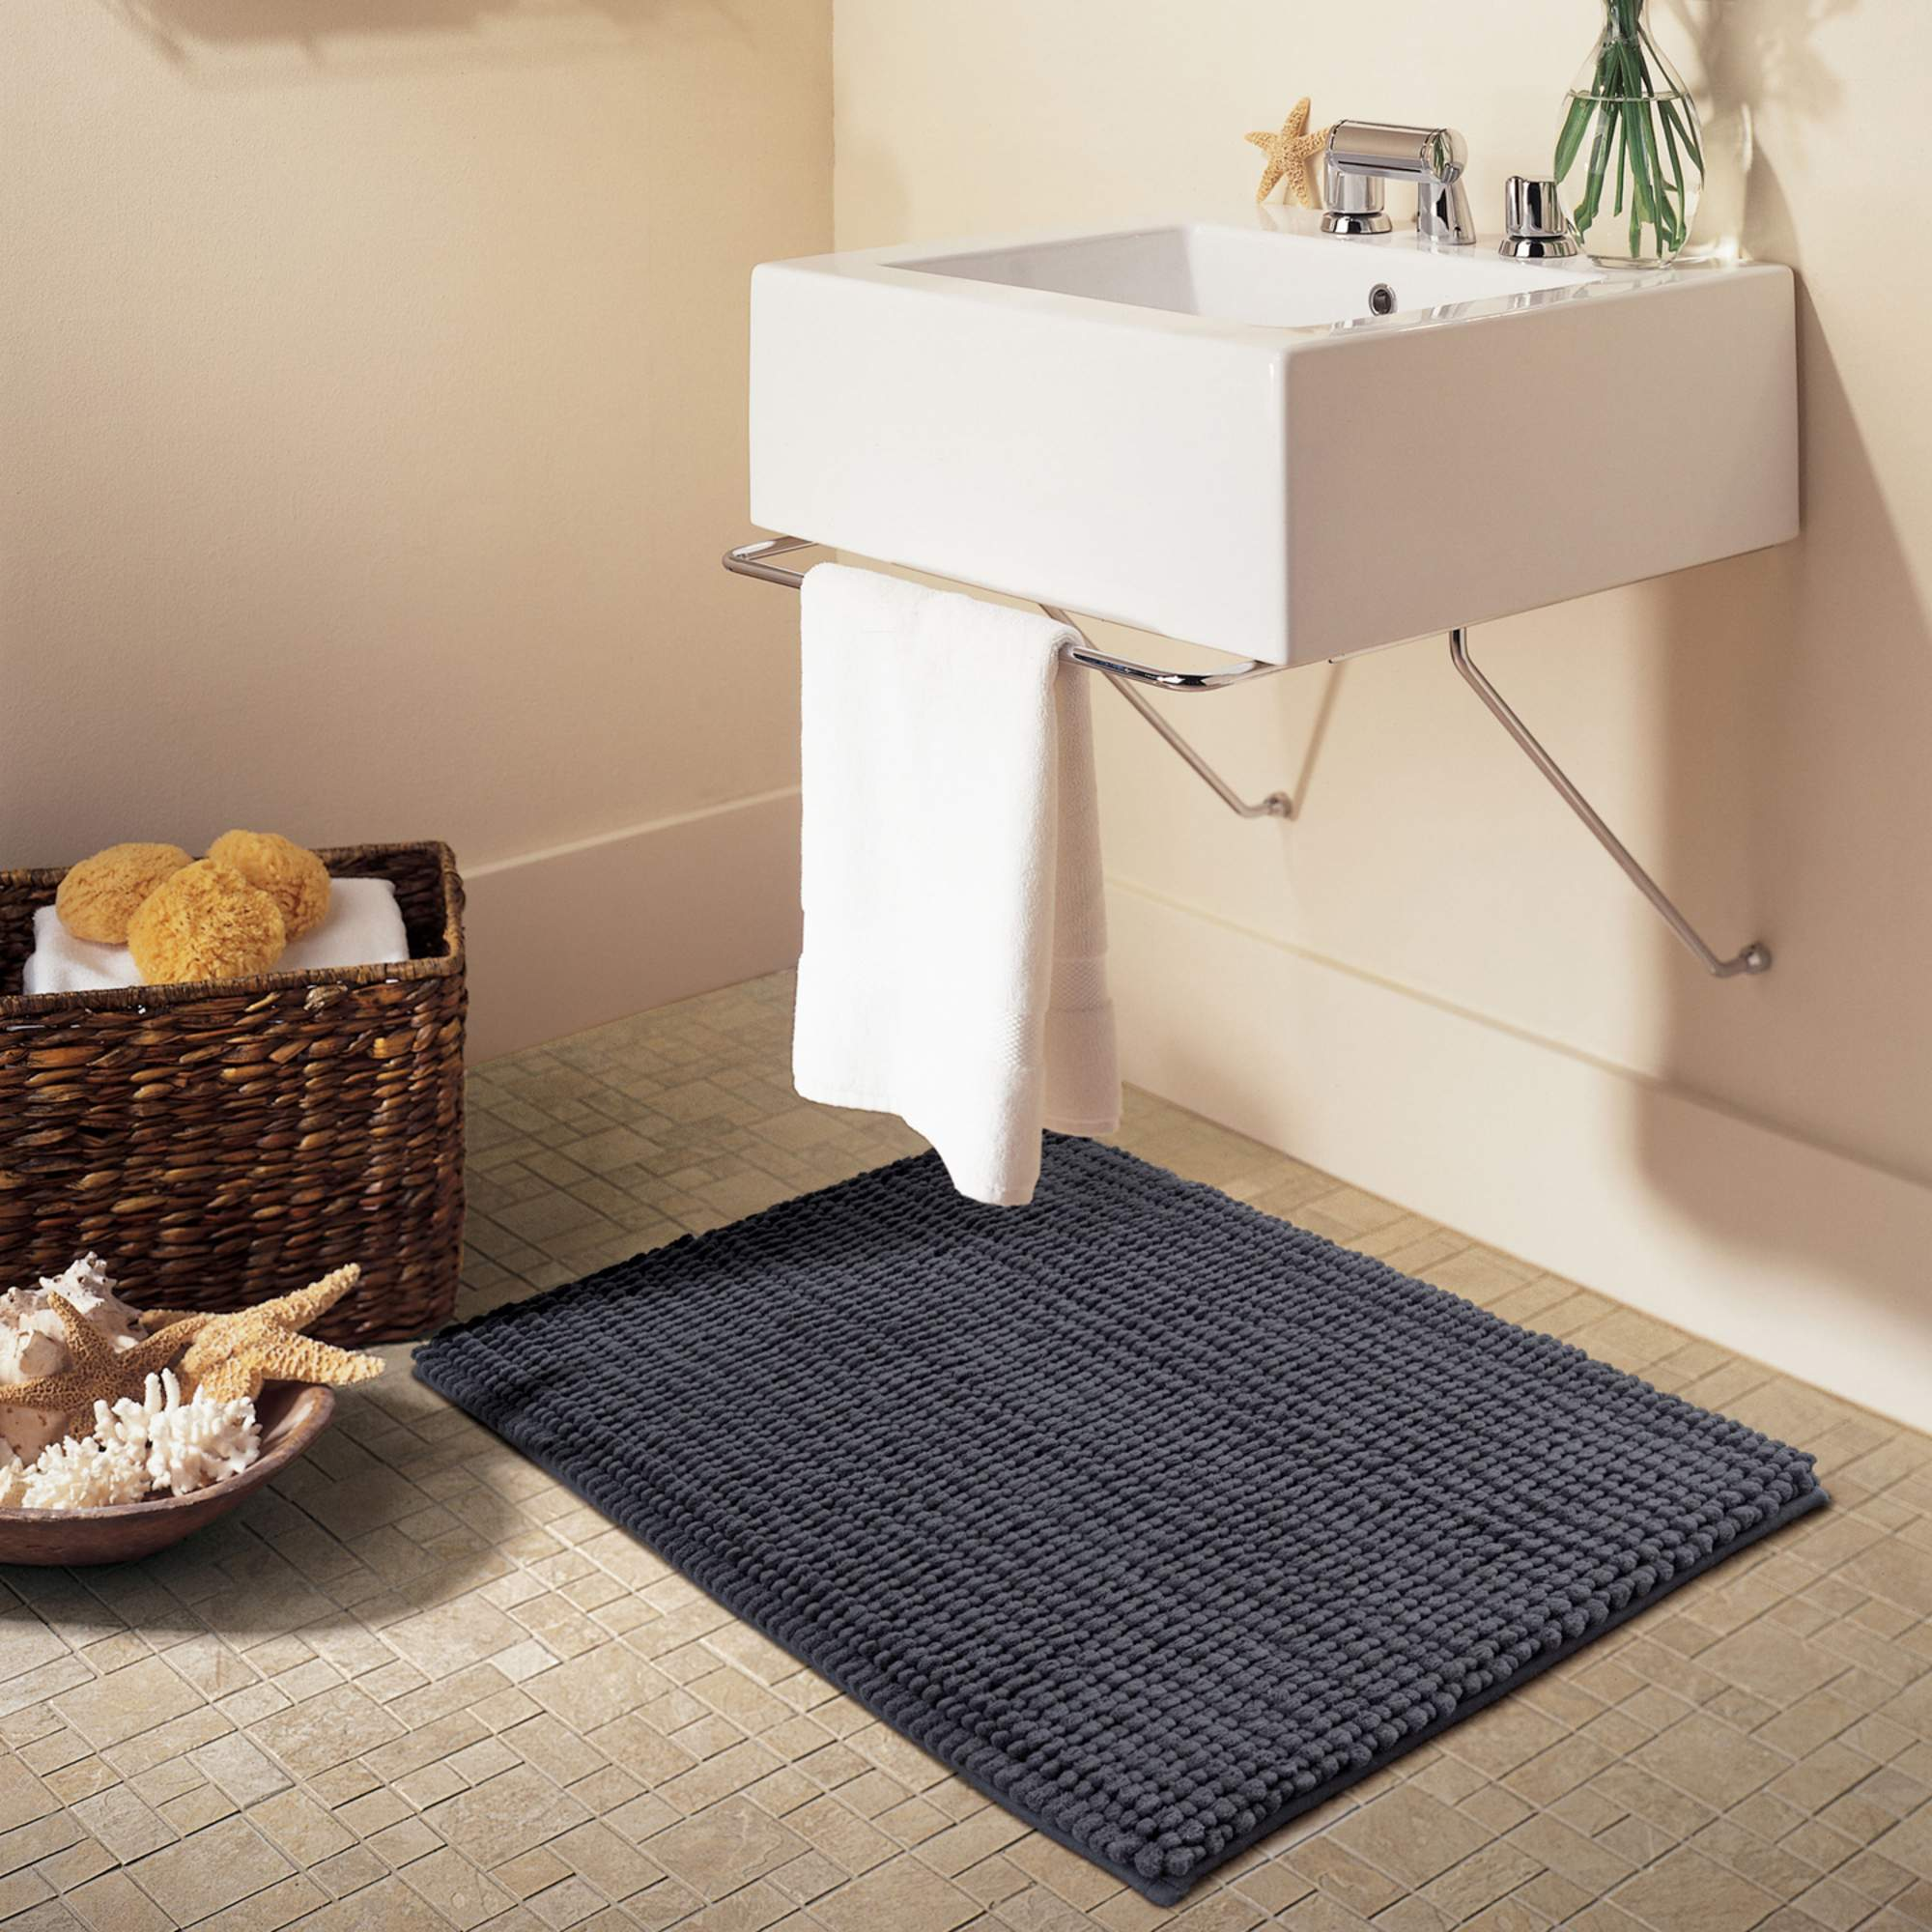 Better Homes & Gardens Noodle Memory Foam Bath Rug by Jinhau Jieling Houseware Company